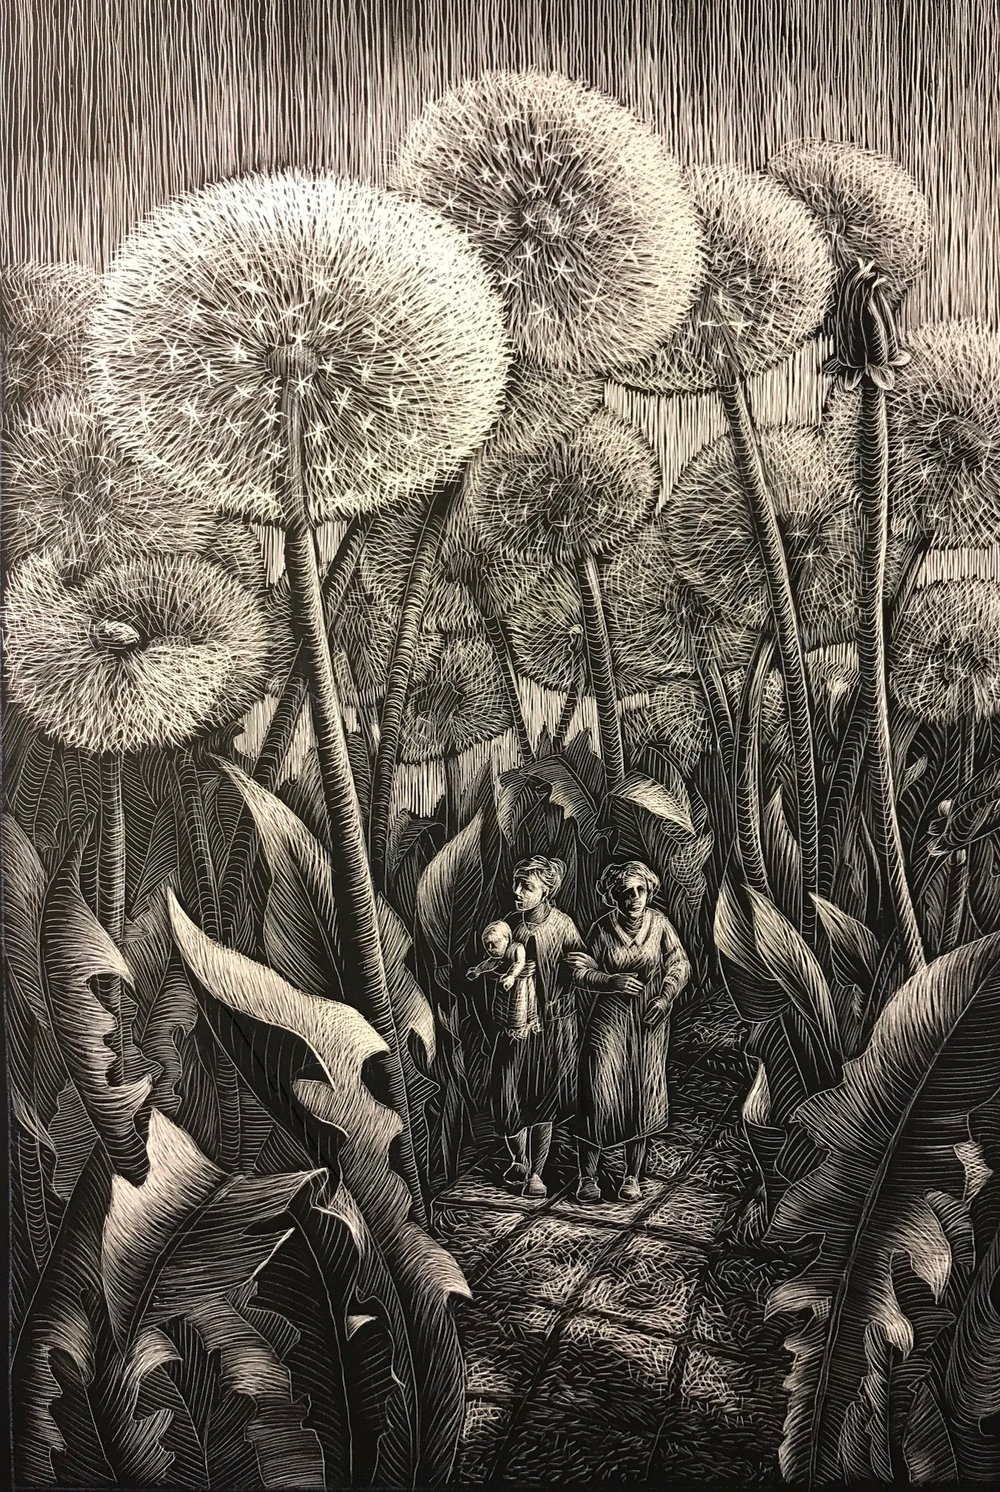 Dandelions (from Why Fish Don't Exist), scratchboard